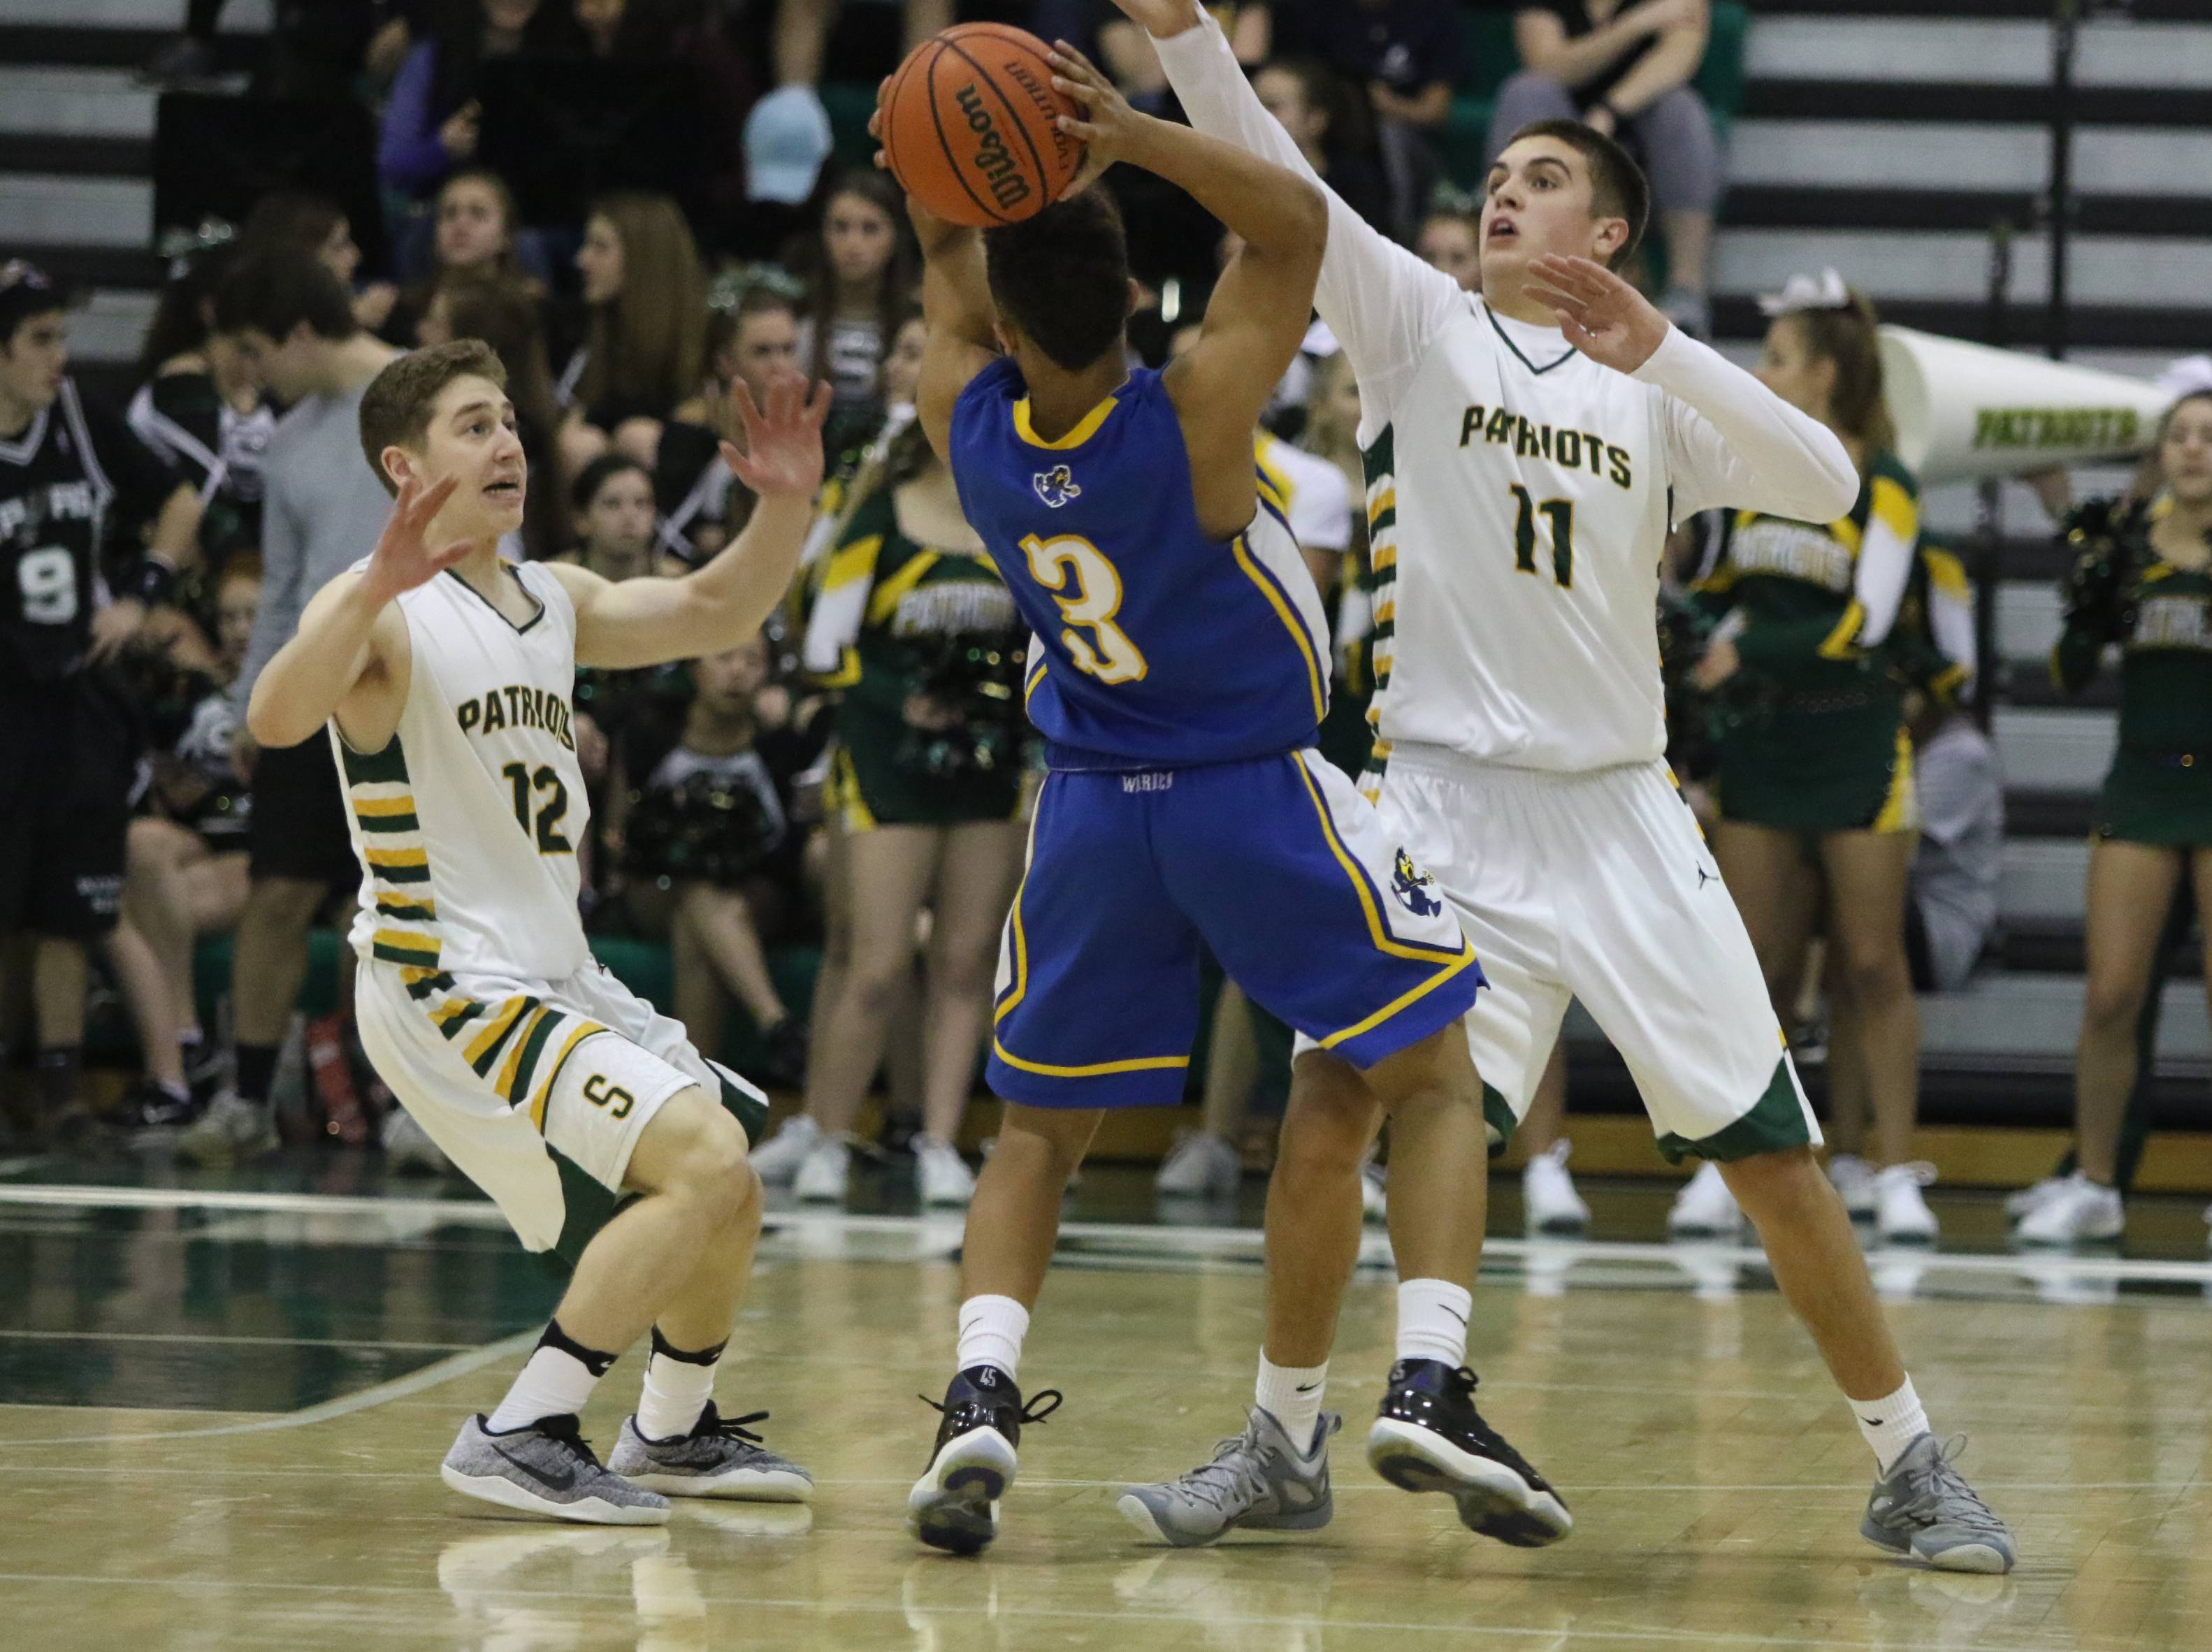 Images from the Stevenson vs. Warren boys basketball game on Wednesday, Feb. 22 in Lincolnshire.